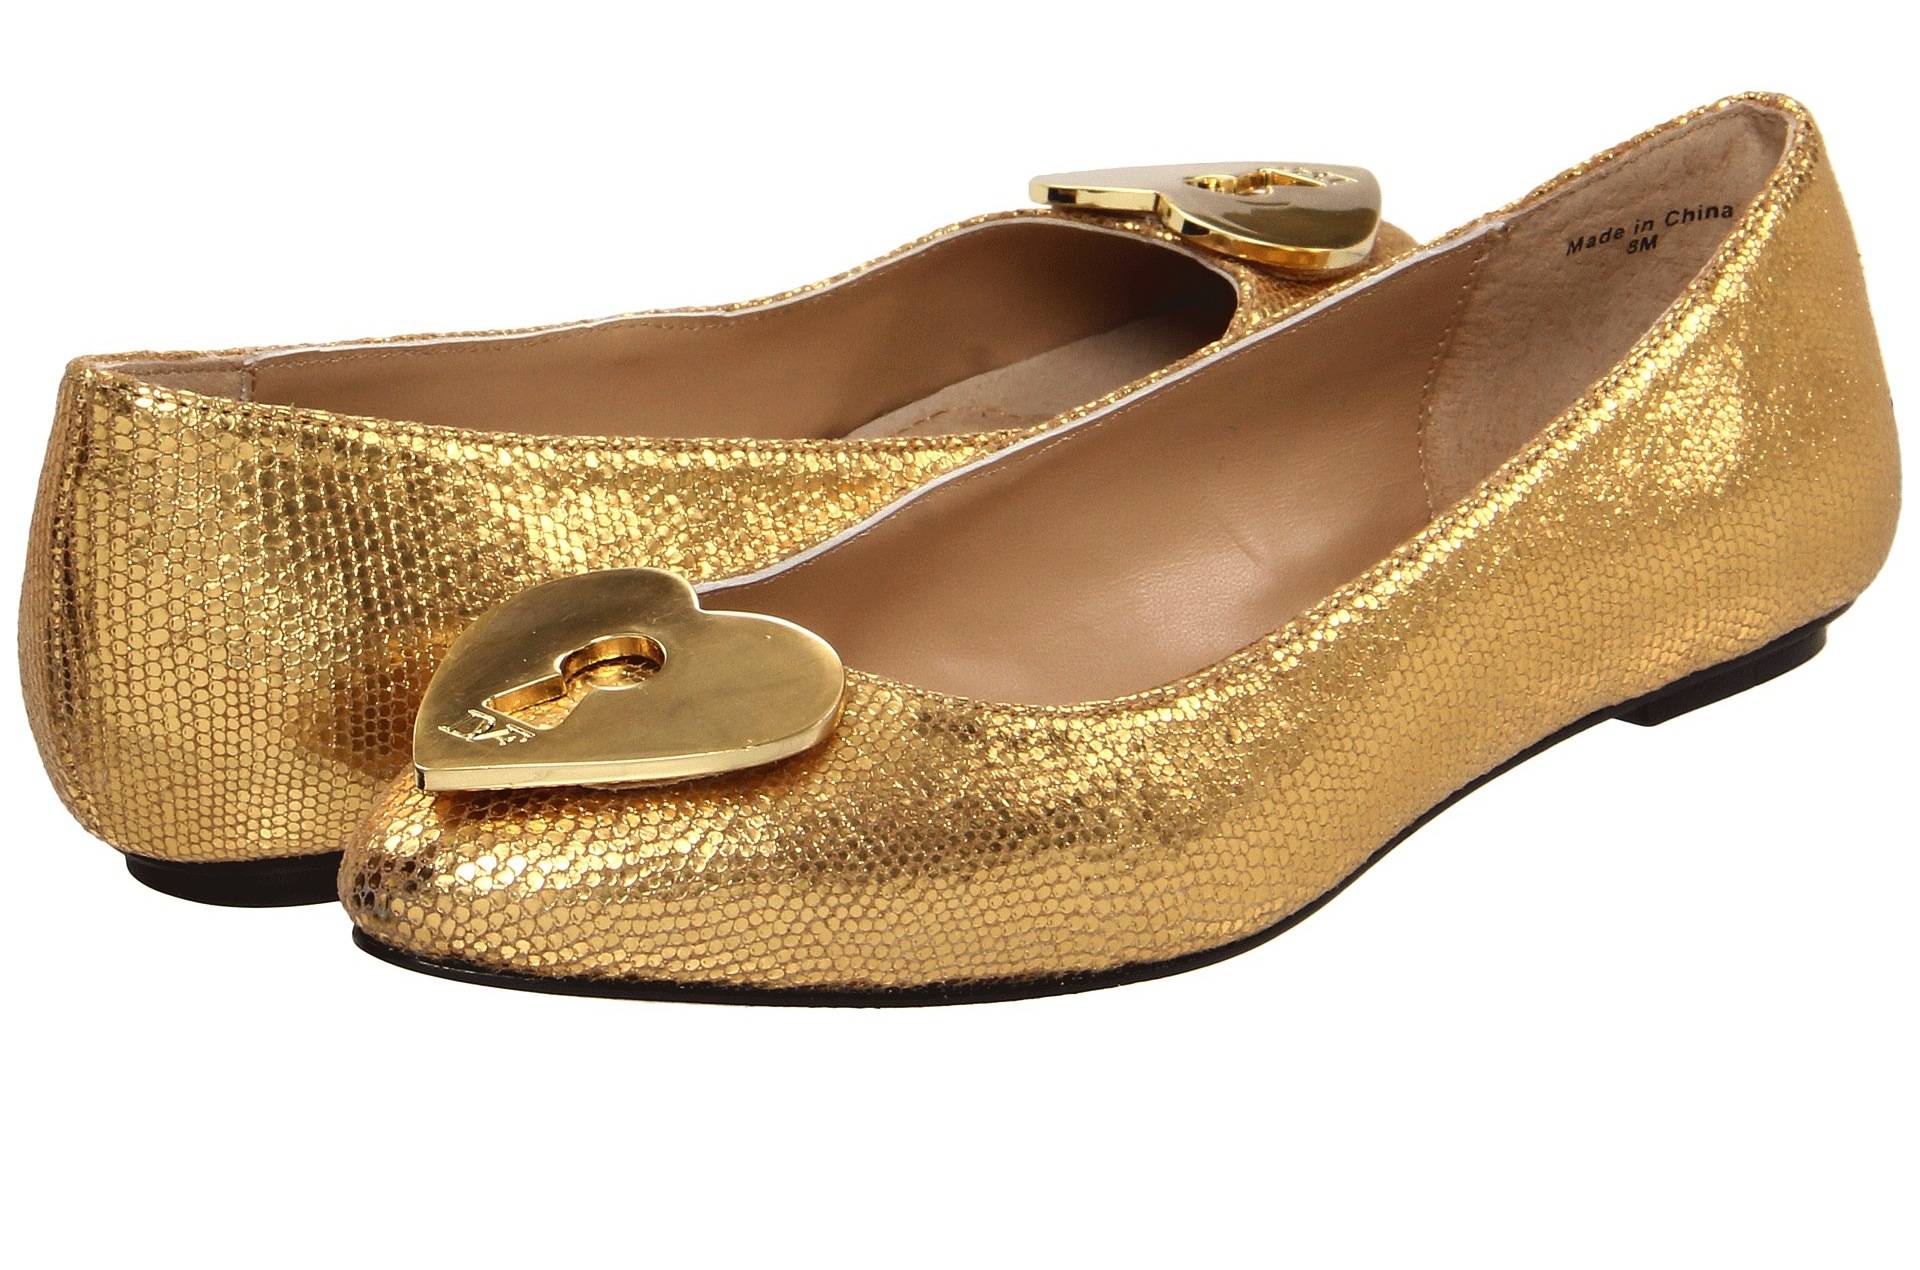 Gold Metallic Wedding Shoes Pointed Ballet Flats | OneWed.com